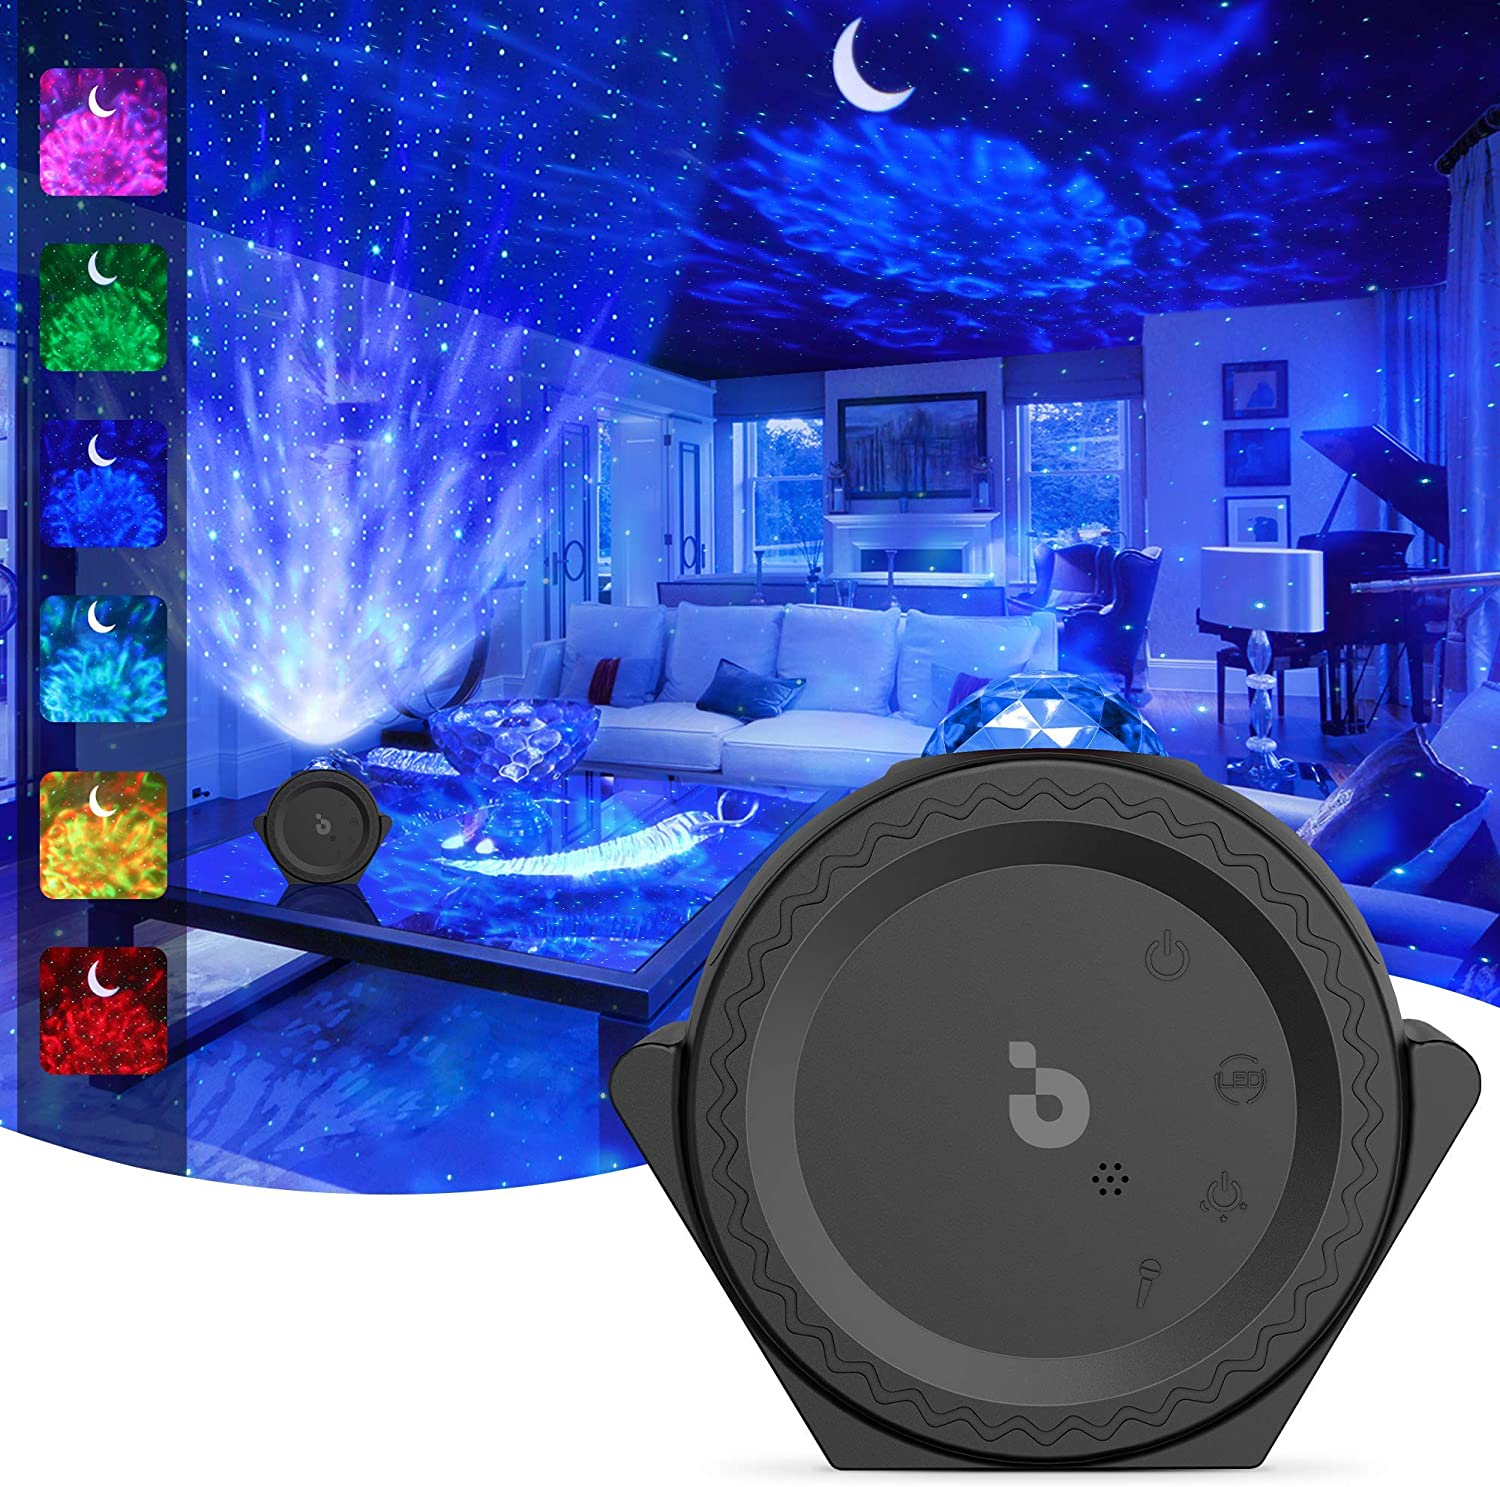 Star Projector, 3-1 Ocean Wave Projector Night Light for Kids with LED Nebula Cloud&Moon, Voice Control, 13 Lighting Effects Galaxy Light Projector for Bedroom/Home Theater/Room Decor (Black)